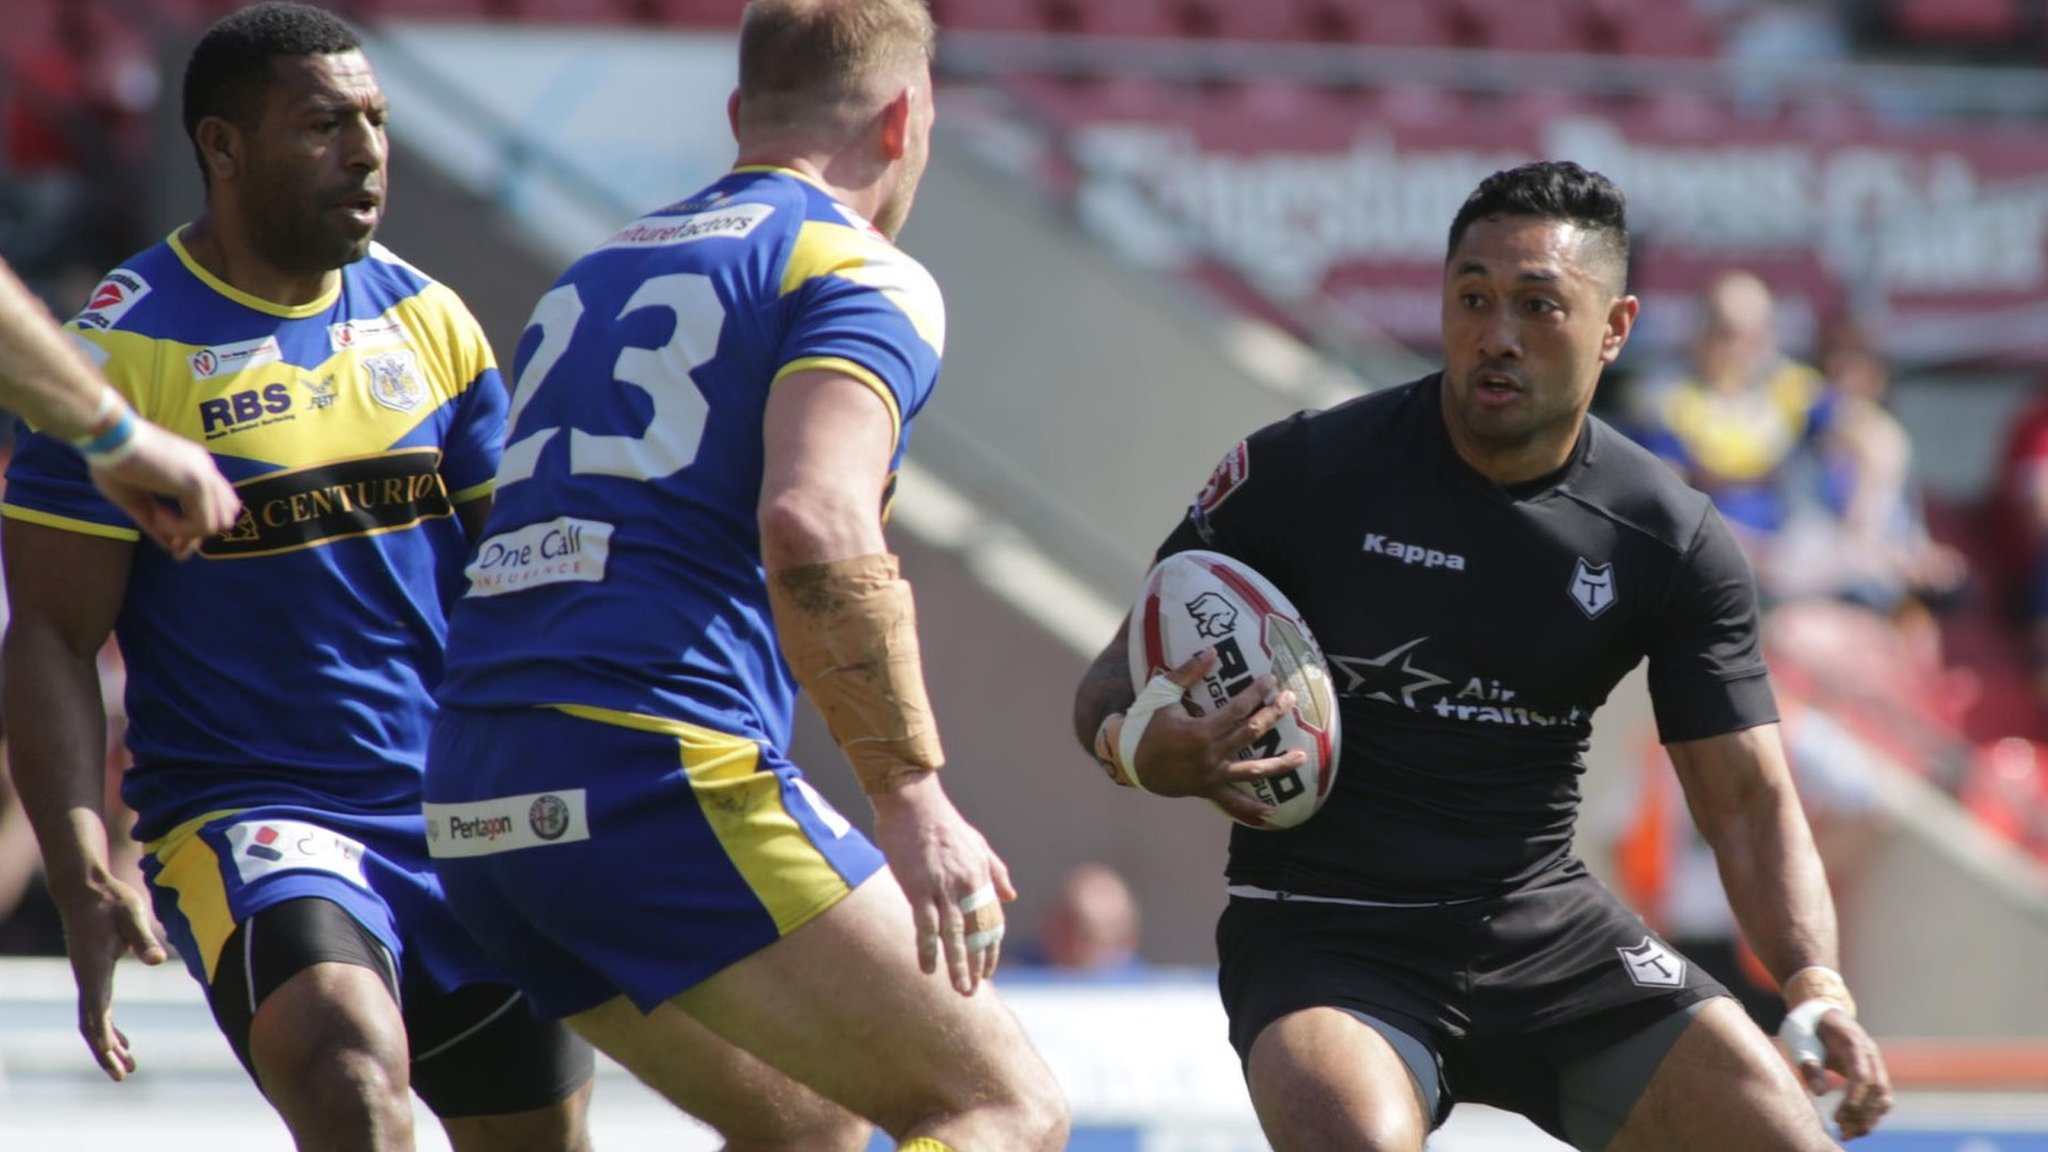 Toronto Wolfpack's Quentin Laulu-Togaga'e